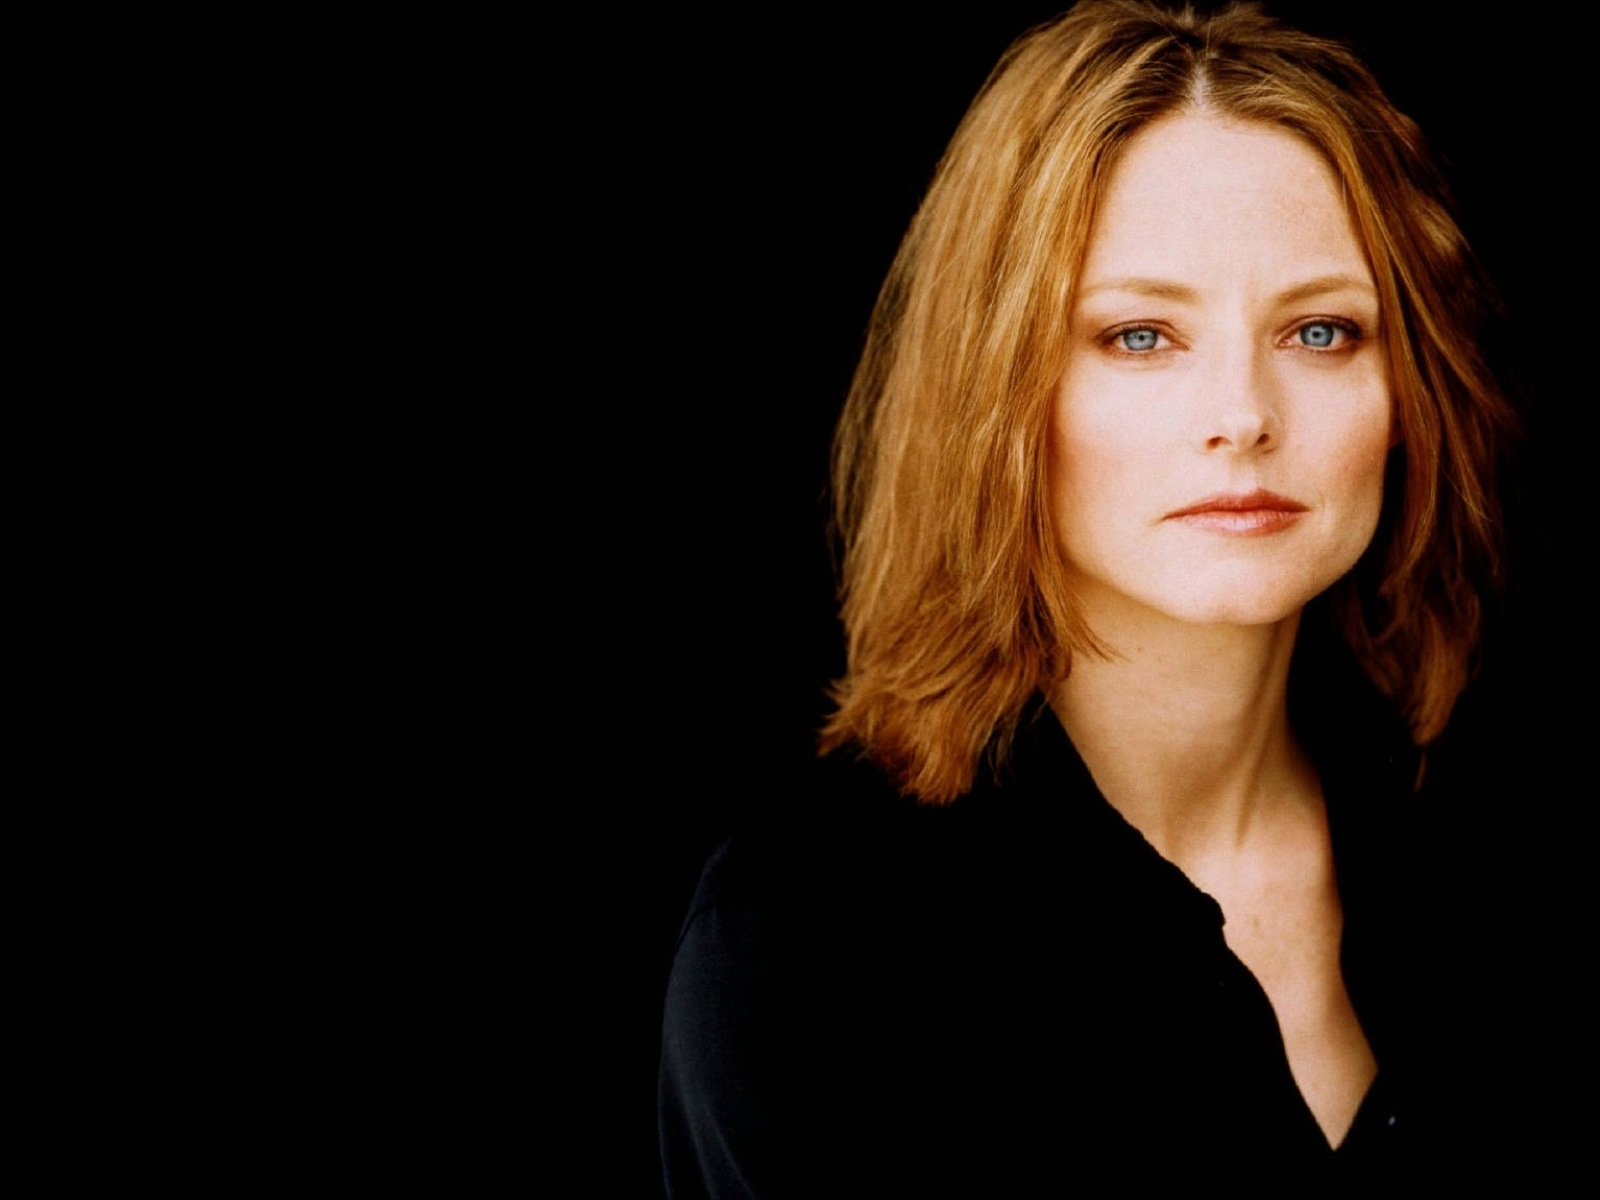 1600x1200 - Jodie Foster Wallpapers 24